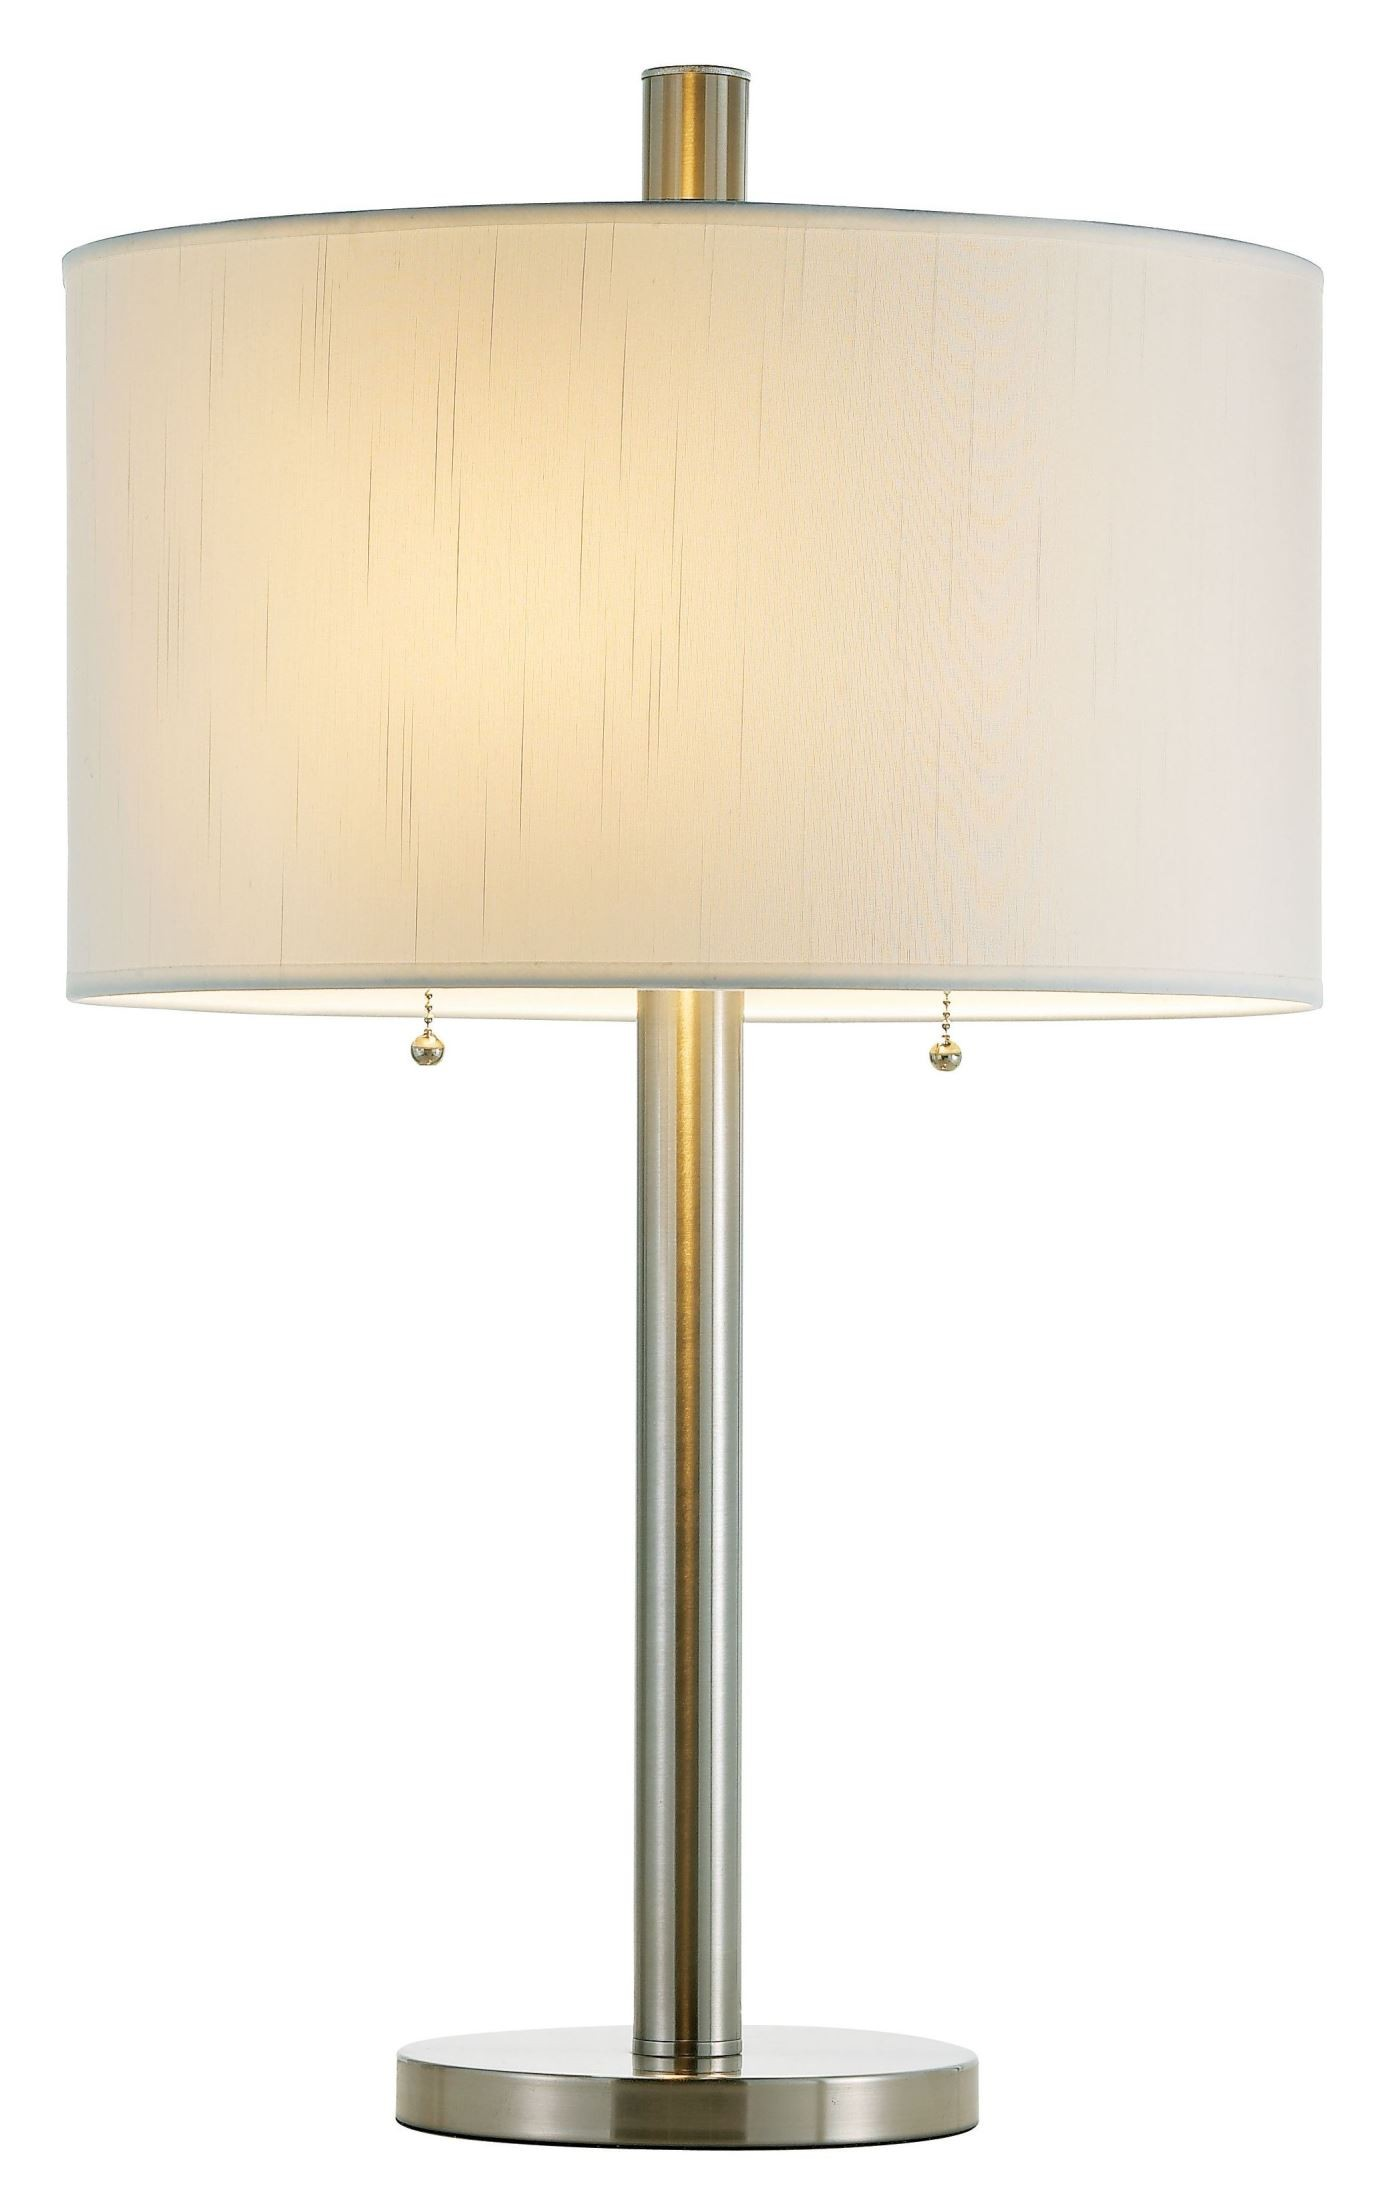 Boulevard Satin Steel Round Base Table Lamp From Adesso